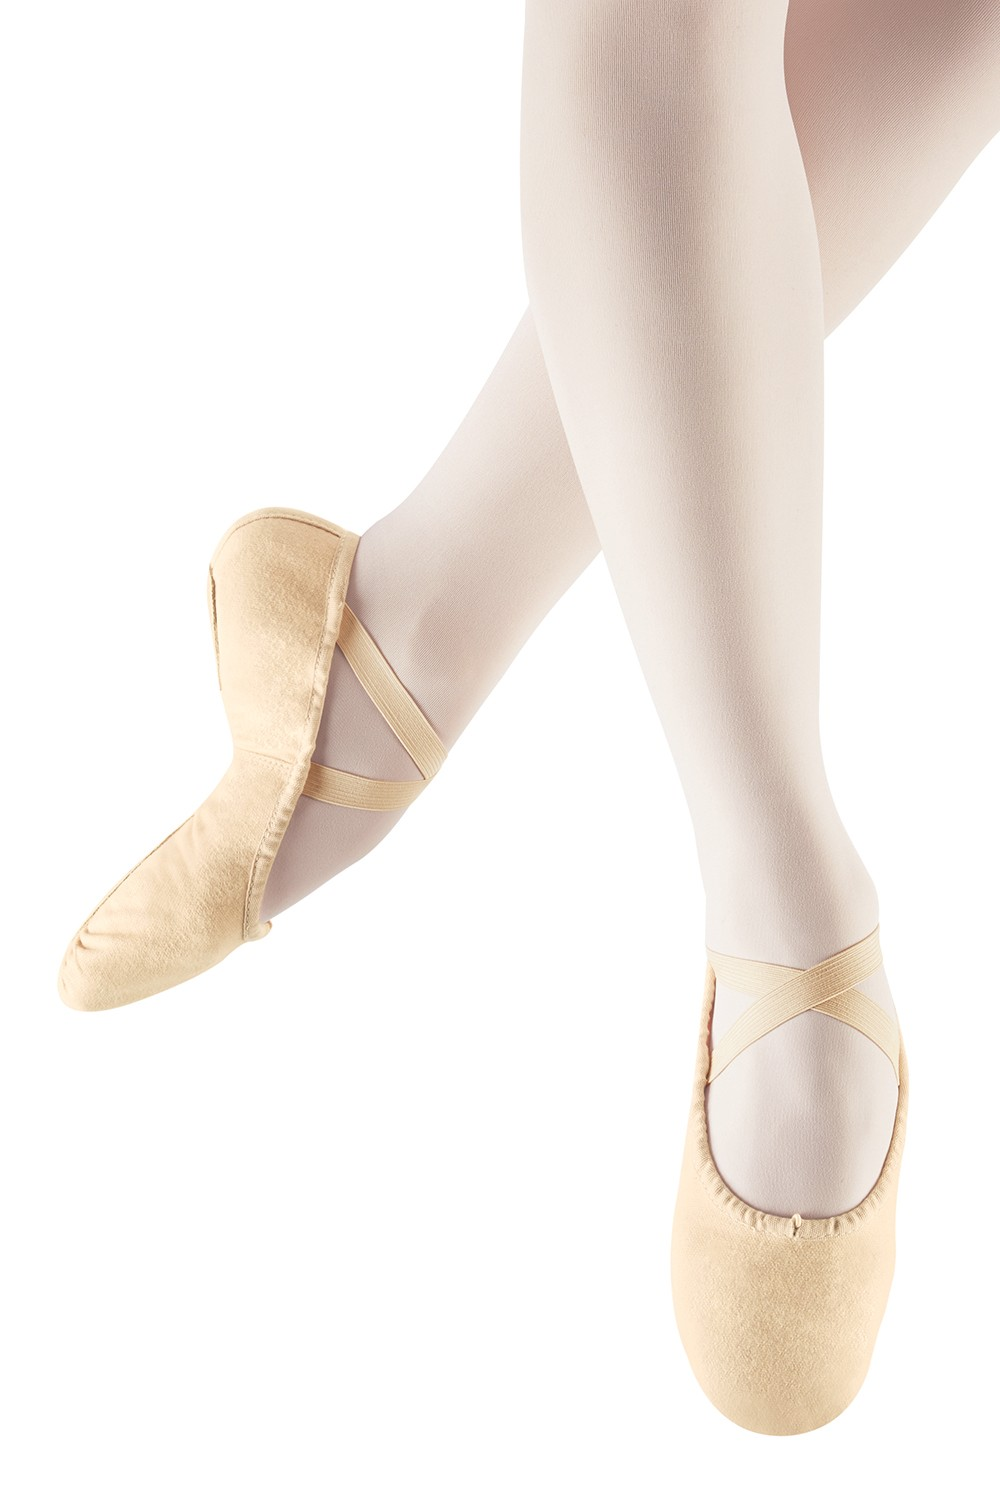 Soft Ballet Shoe Women's Ballet Shoes